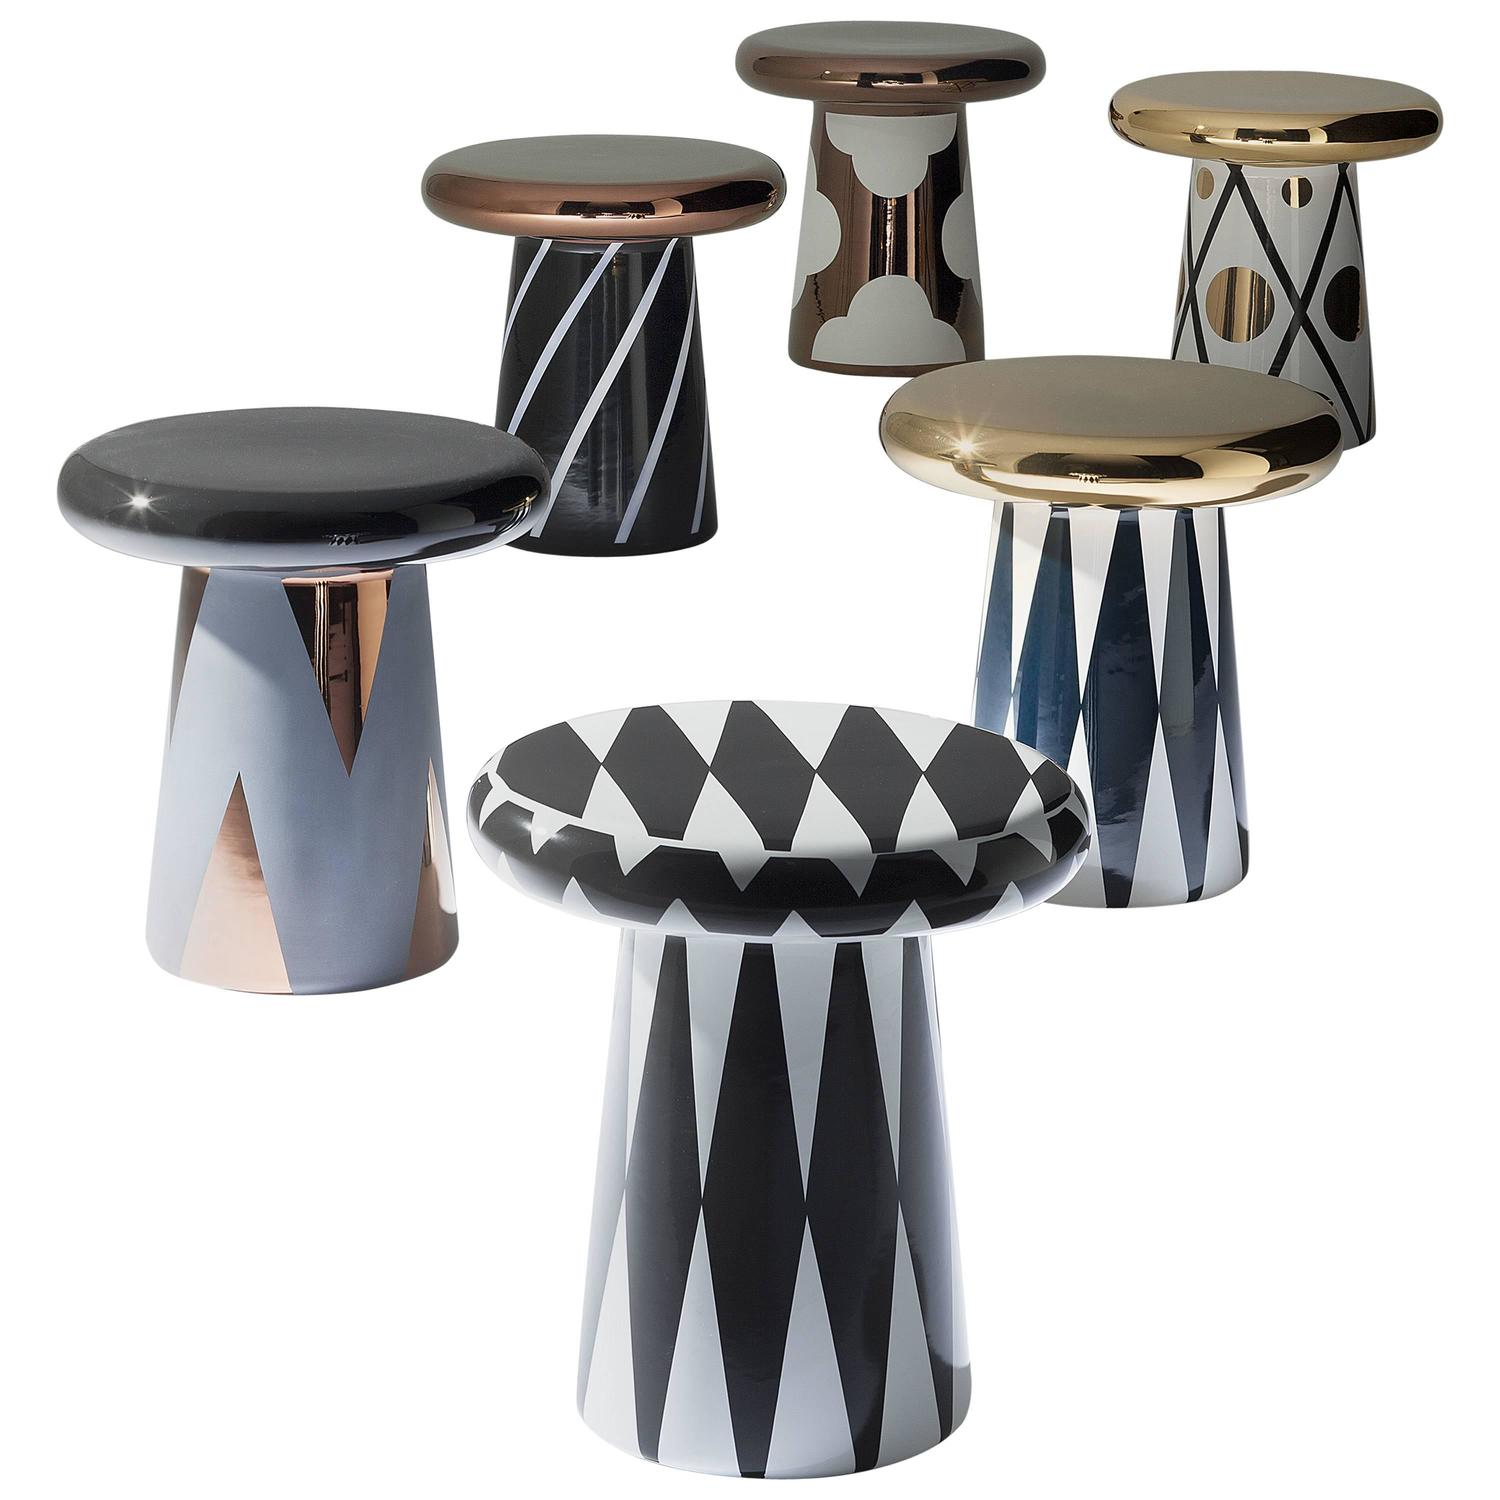 t table special edition jaime hayon by bosa for sale at 1stdibs. Black Bedroom Furniture Sets. Home Design Ideas